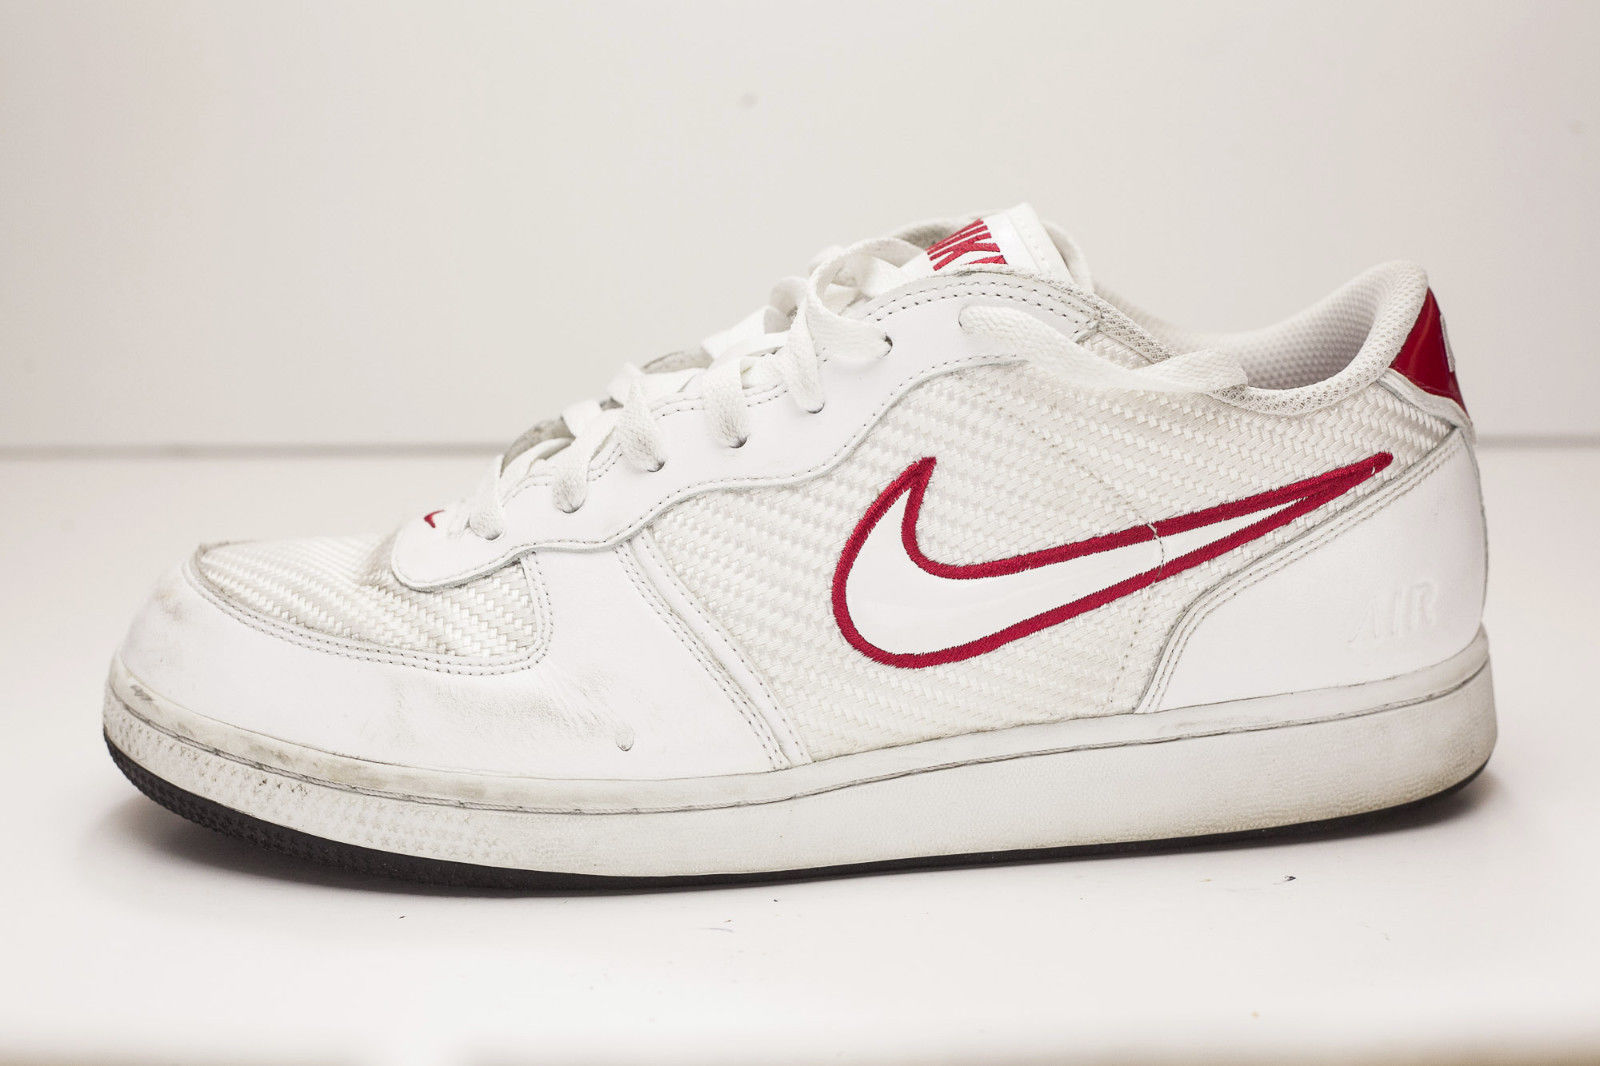 Nike 10.5 White Red Court Shoes Men's